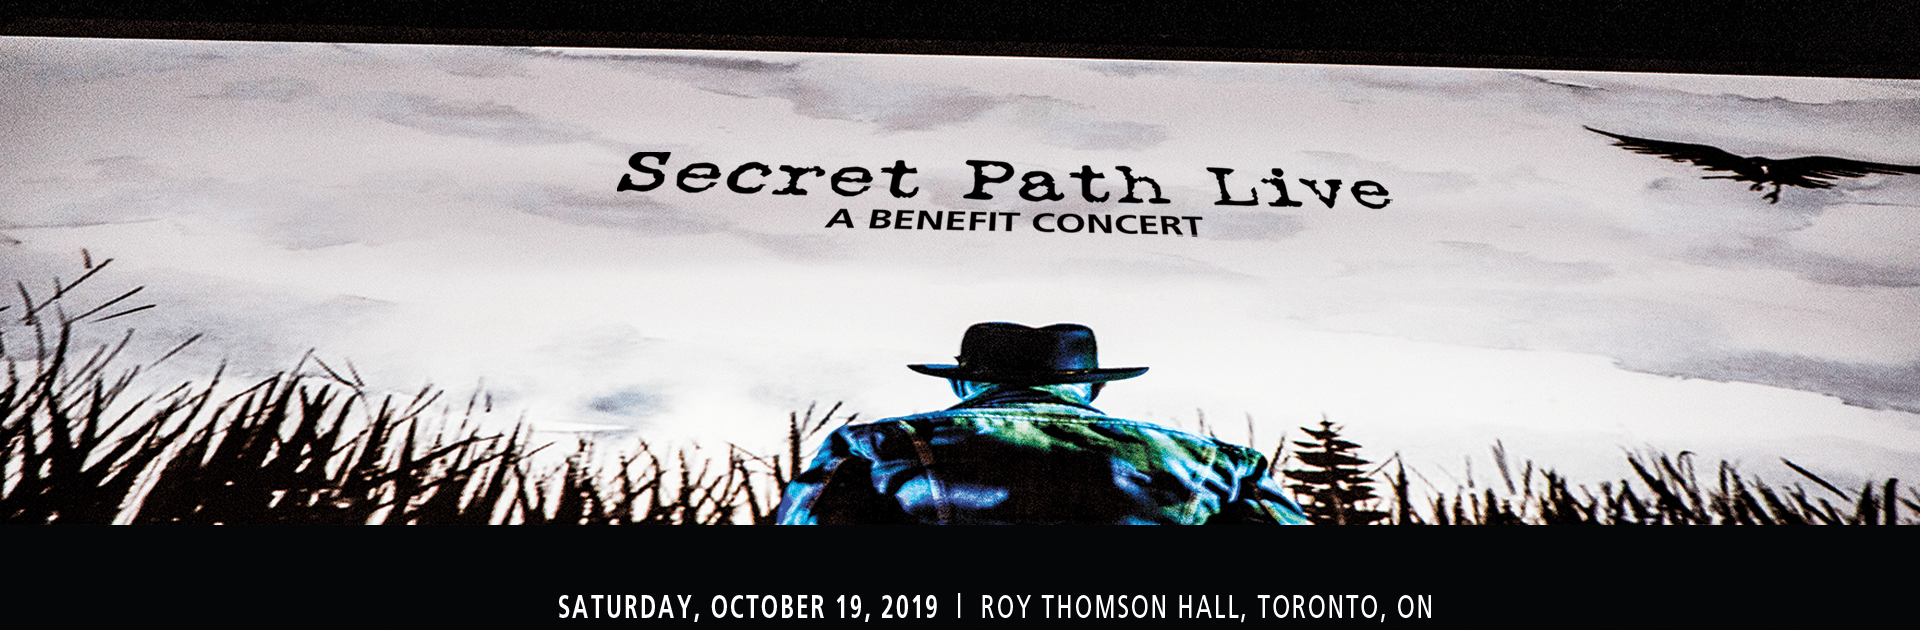 secret-path-live-banner-image